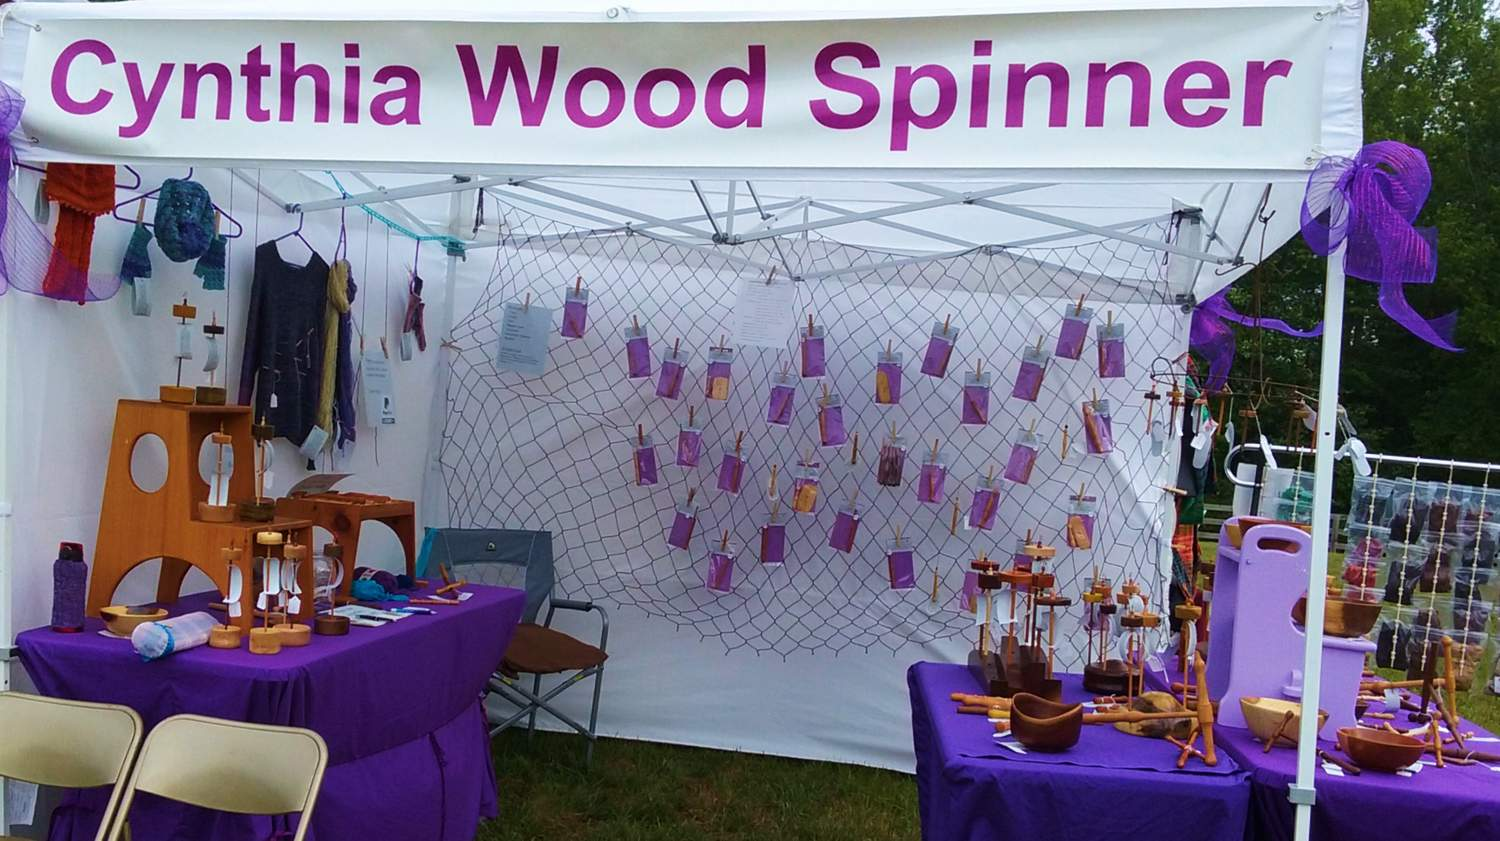 Cynthia's Cynthia Wood Spinner booth at Powhatan's Festival of Fiber 2017